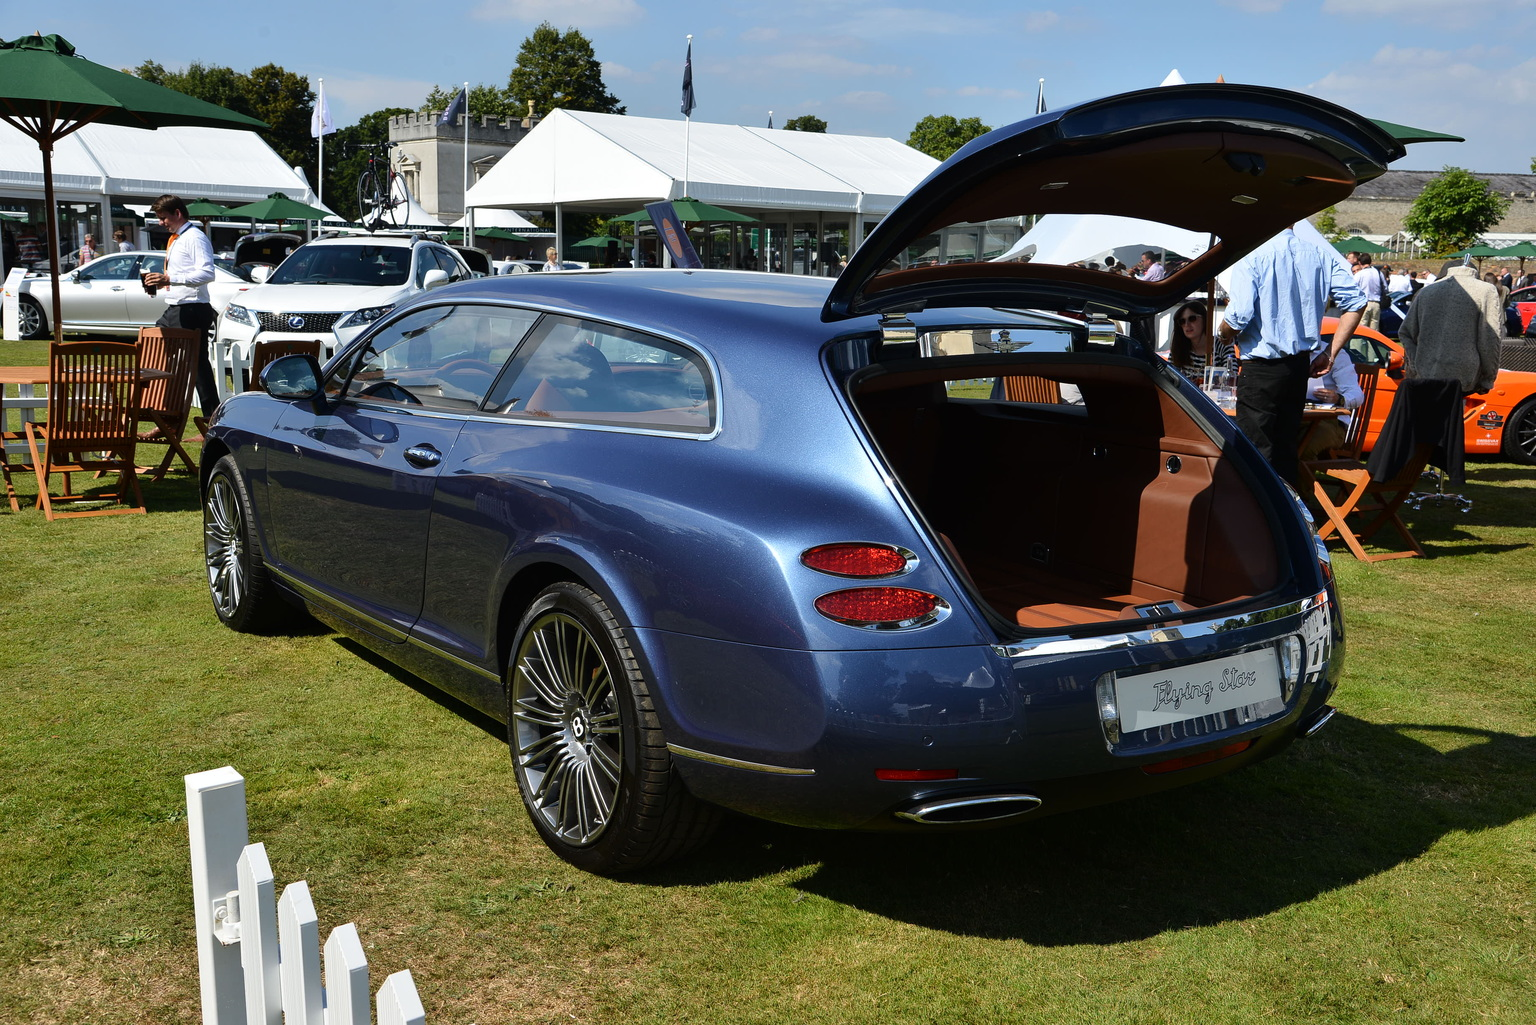 2010 bentley continental flying star gallery gallery 2010 bentley continental flying star gallery vanachro Choice Image